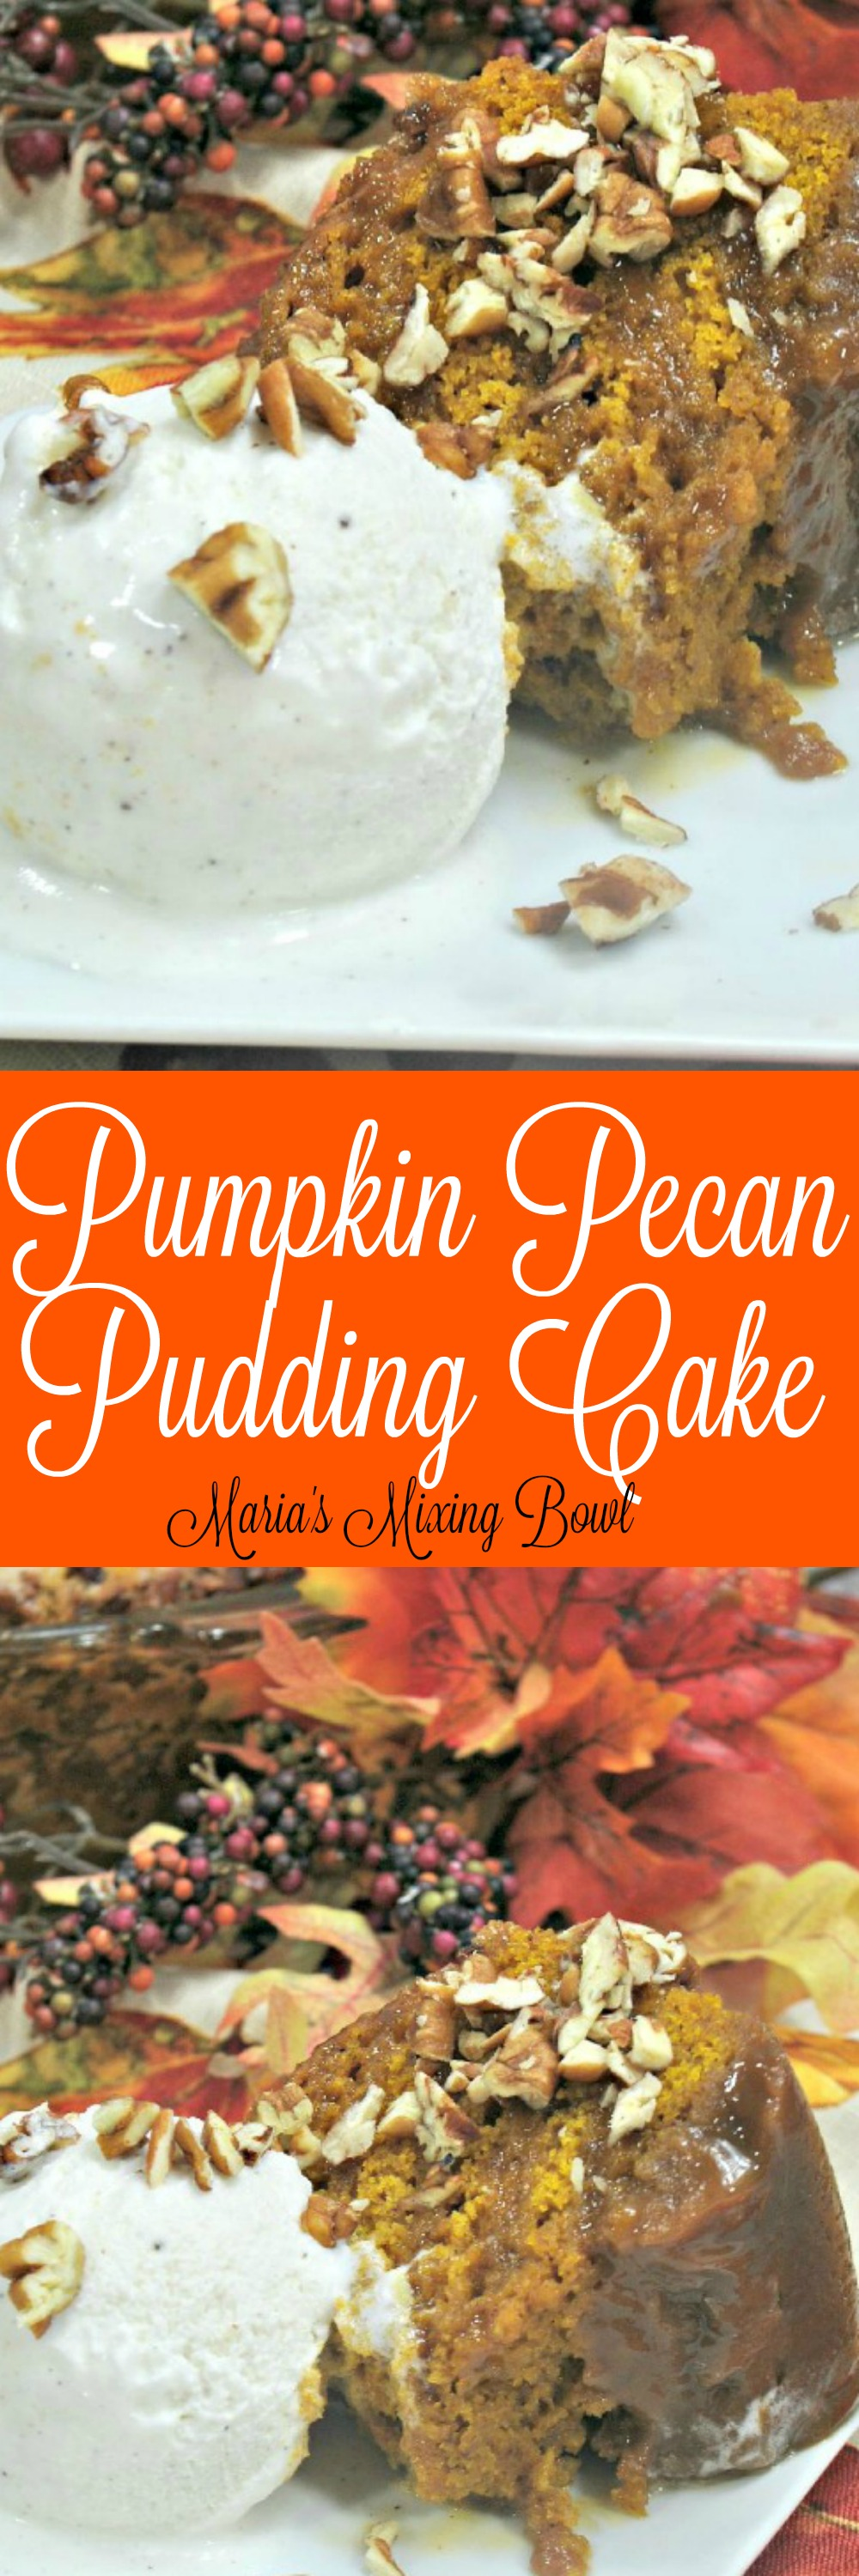 Pumpkin Pecan Pudding Cake Recipe  - an easy dessert perfect for all your fall gatherings and Thanksgiving.  Warm and cozy spices fill this dessert with THE BEST flavor!